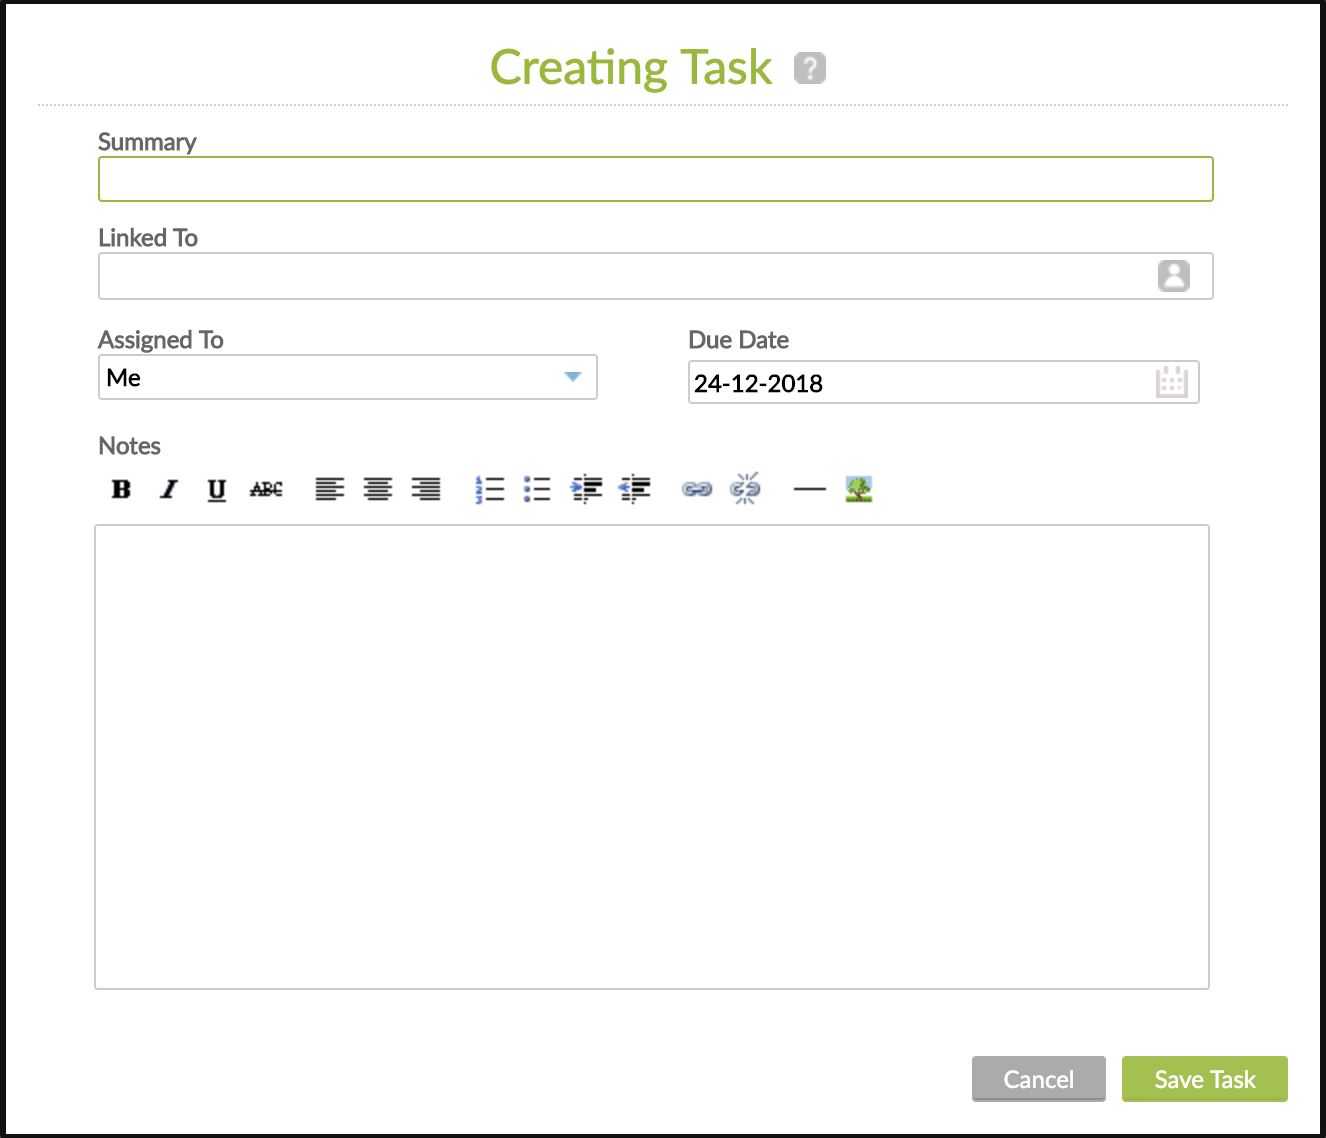 Creating Task form with Summary, Linked To, Assiged To, Due Date and Notes fields.